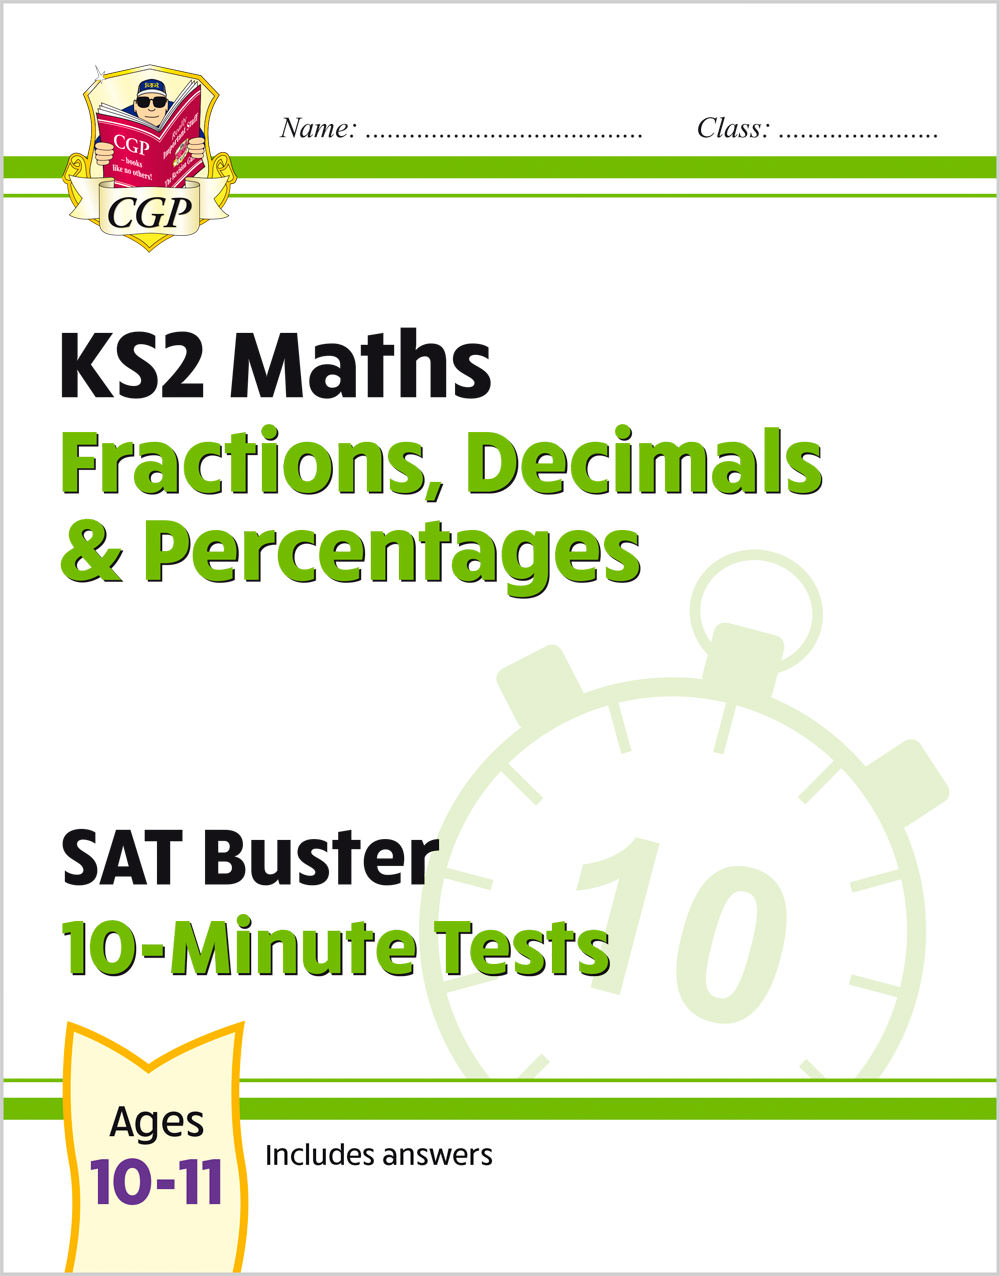 MFDPXP21 - New KS2 Maths SAT Buster 10-Minute Tests - Fractions, Decimals & Percentages